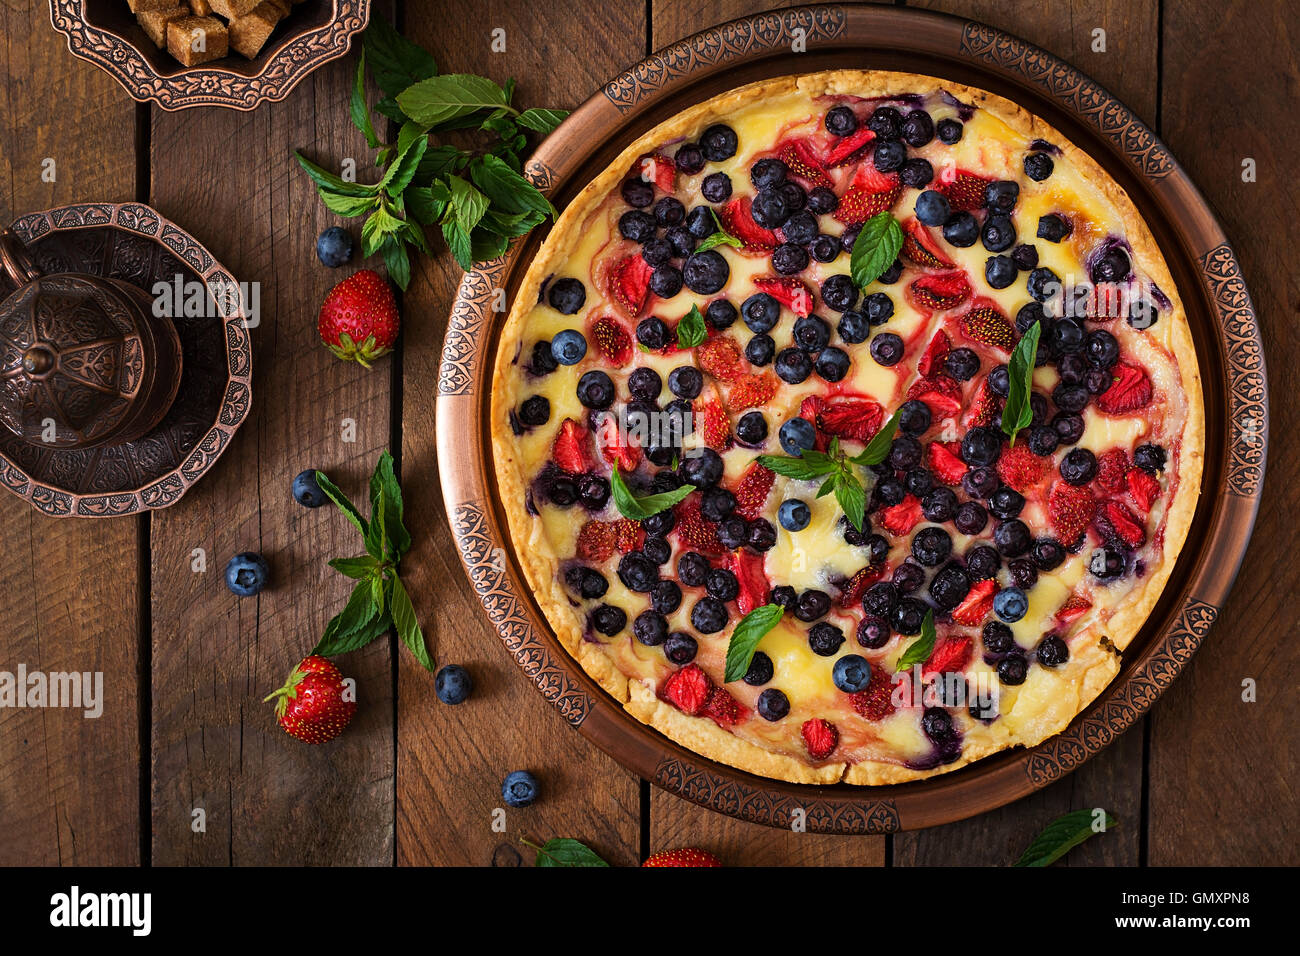 French tart (flan) with berries and custard. Top view - Stock Image